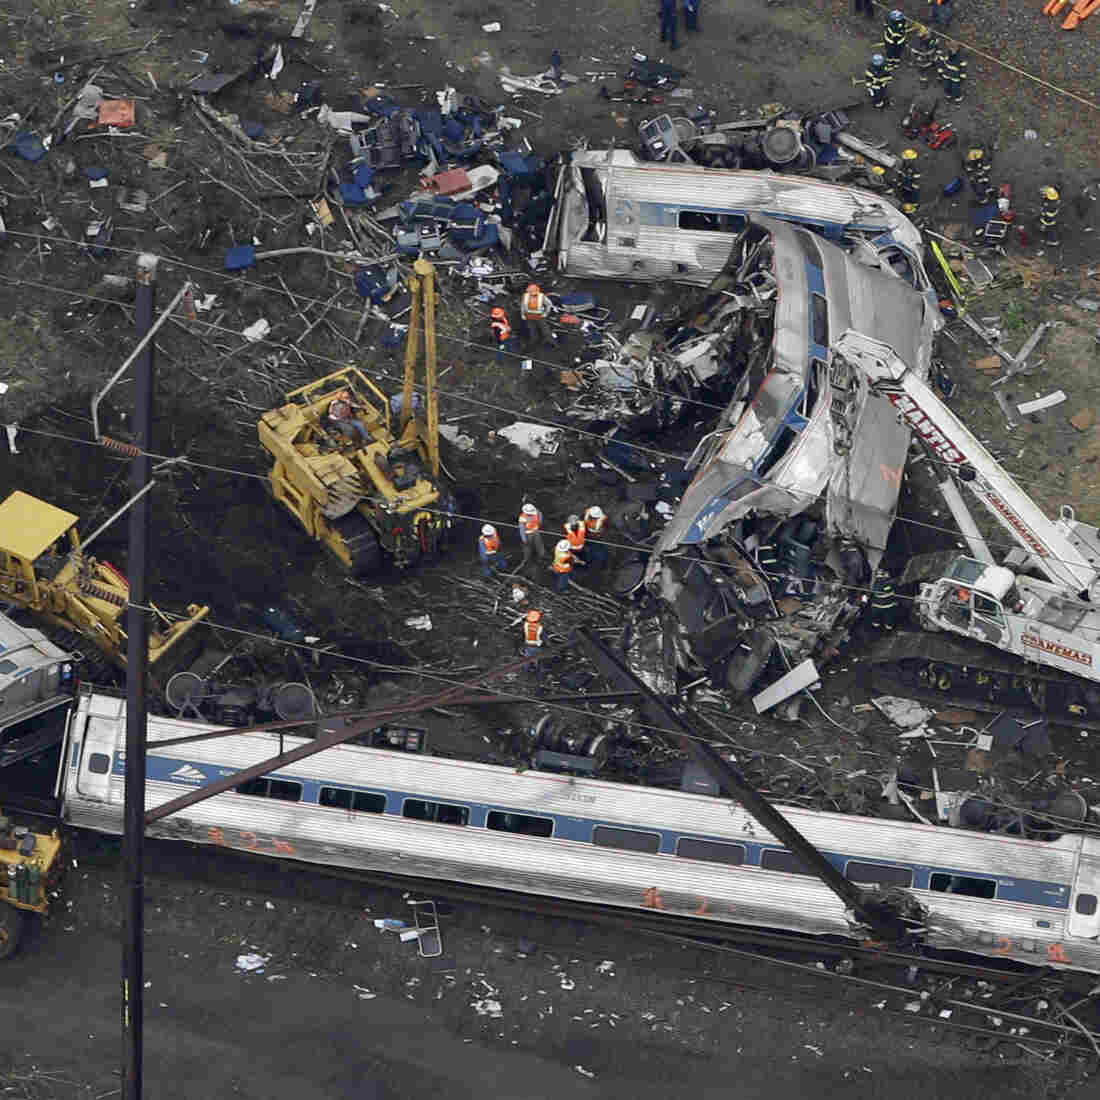 Emergency personnel work at the scene of a deadly train wreck, on Wednesday. The FBI is now looking into the possibility that the locomotive was struck by some sort of projectile.